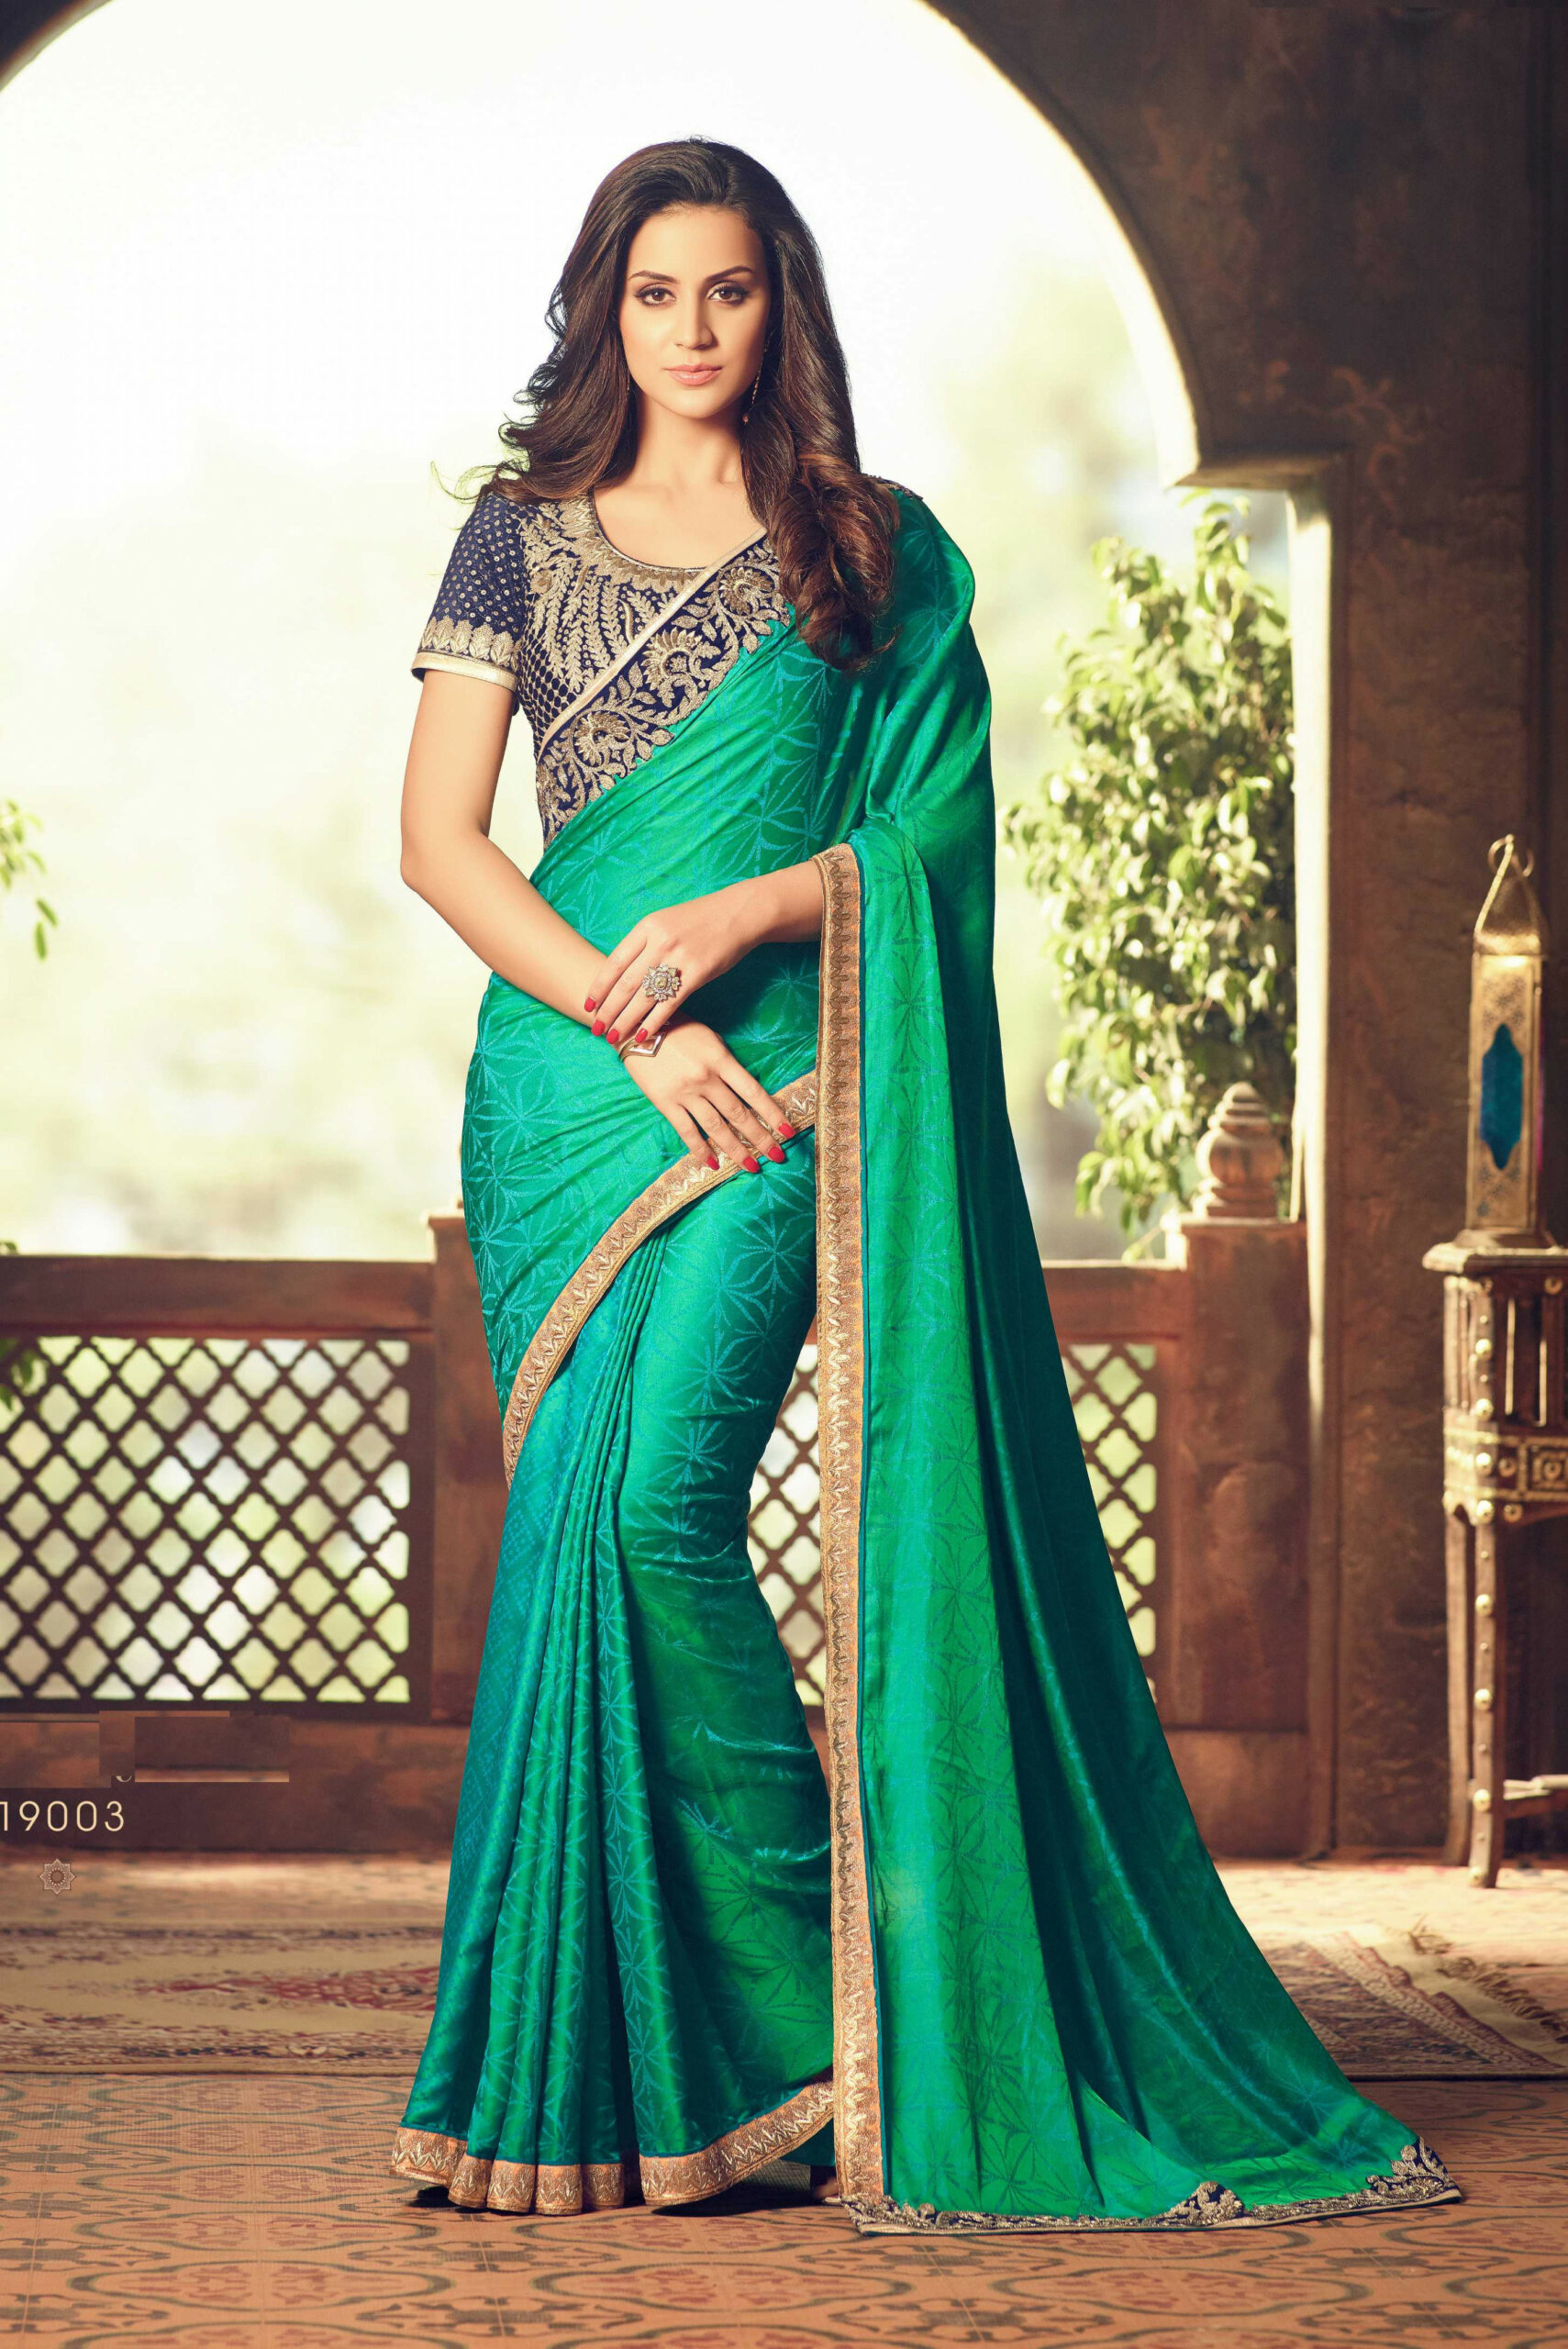 Green Party Wear Saree With Embroidered Blue Blouse  Brijraj